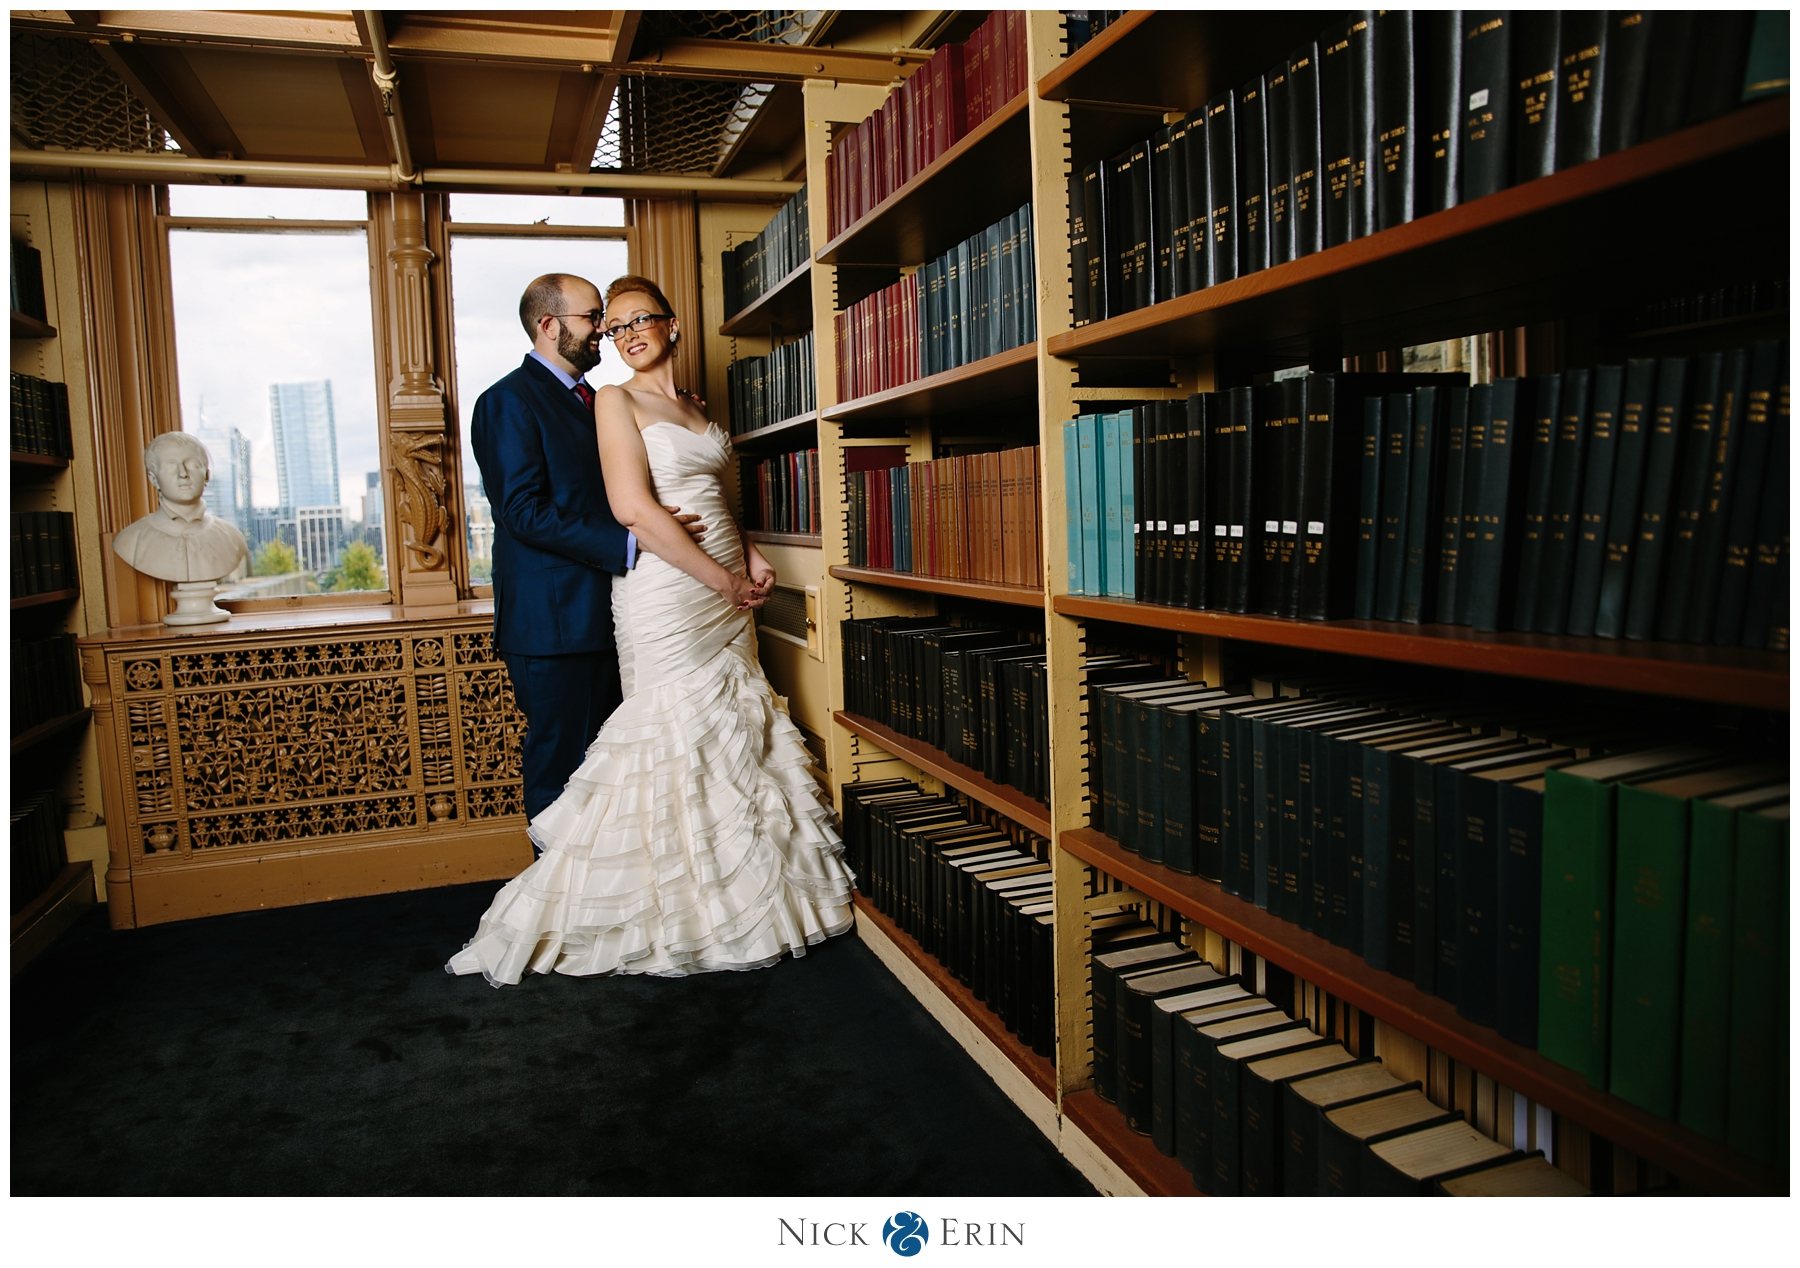 donner_photography_washington-dc-wedding_alanna-josh_00021a